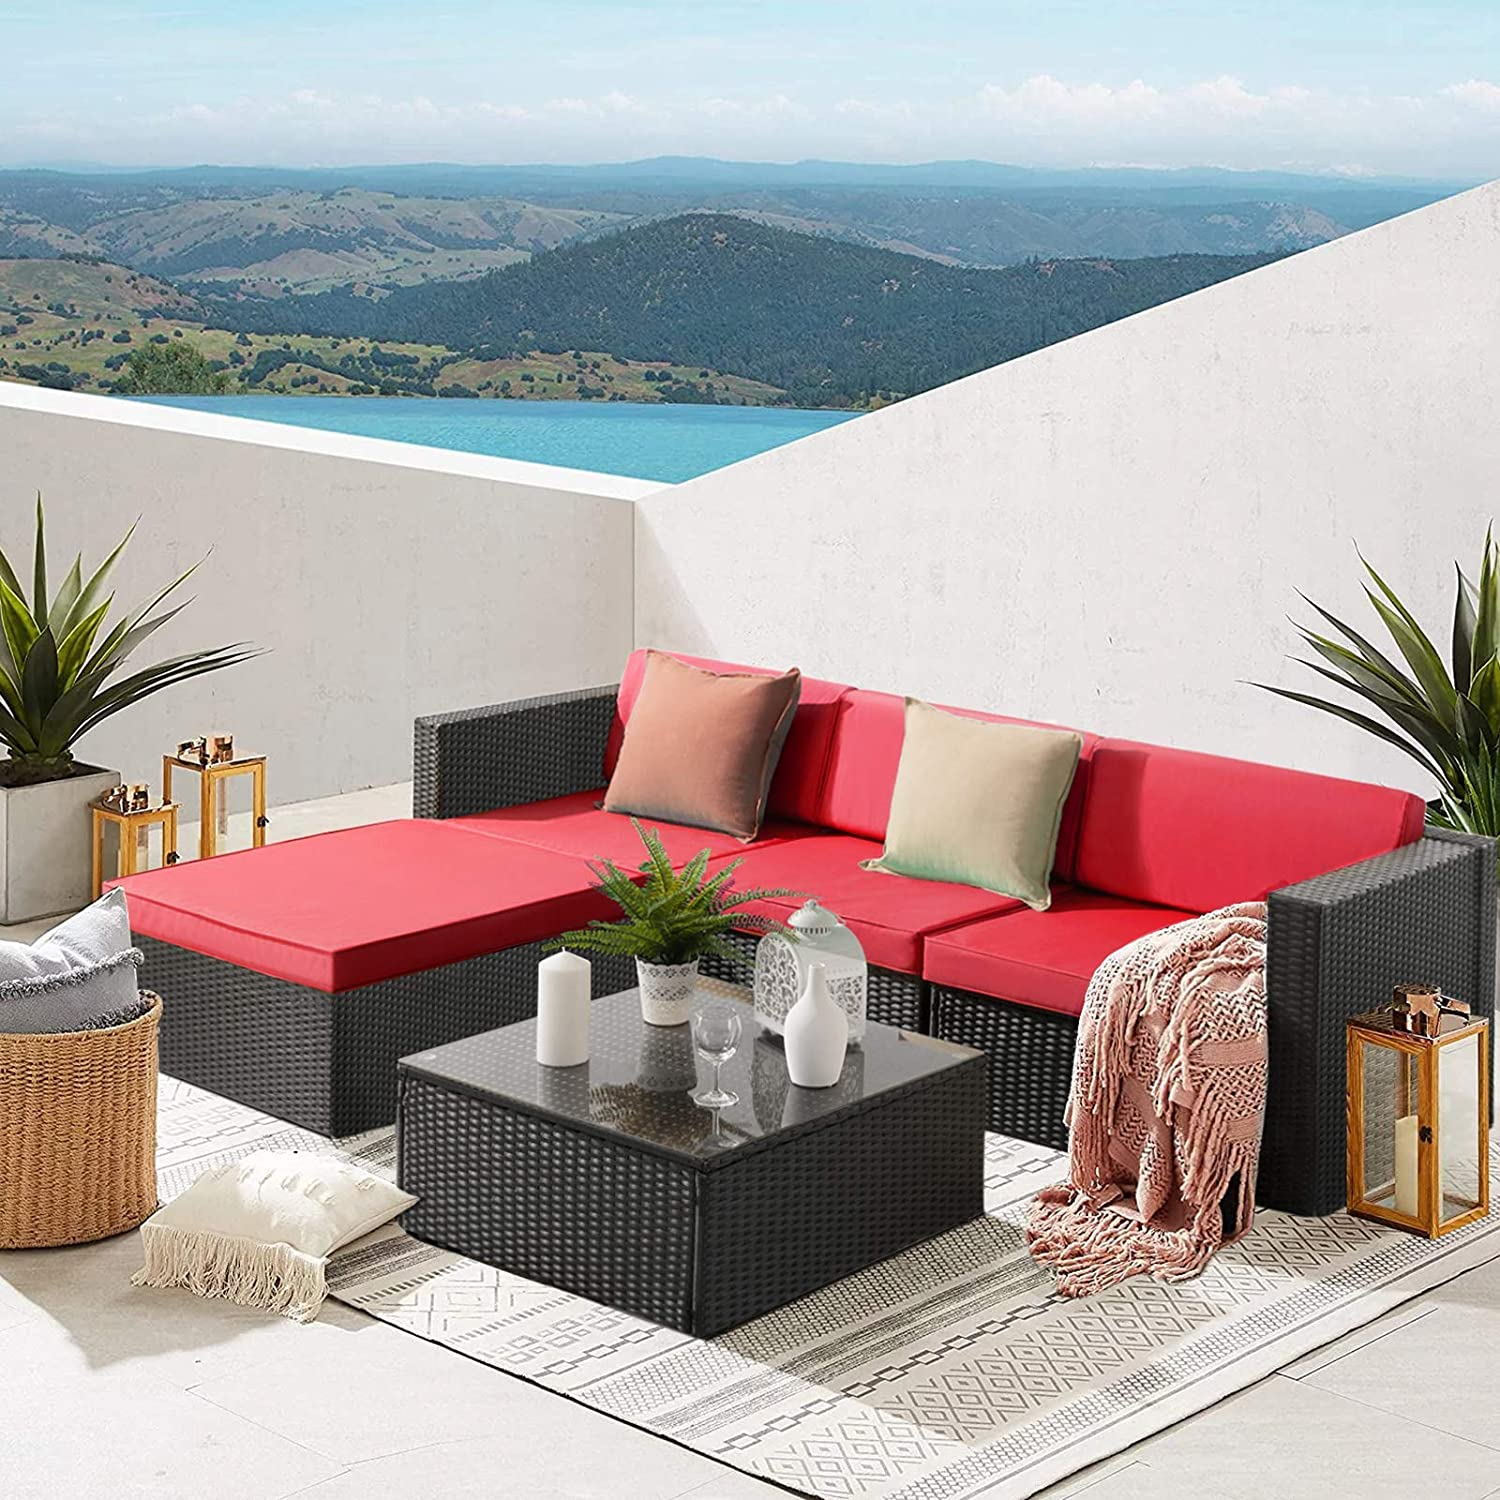 Waleaf Upgraded Outdoor Furniture Rattan Sectional Patio Sofa, Outdoor Indoor Backyard Porch Garden Poolside Balcony Wicker Conversation Set with Glass Table (5 pcs, Red)